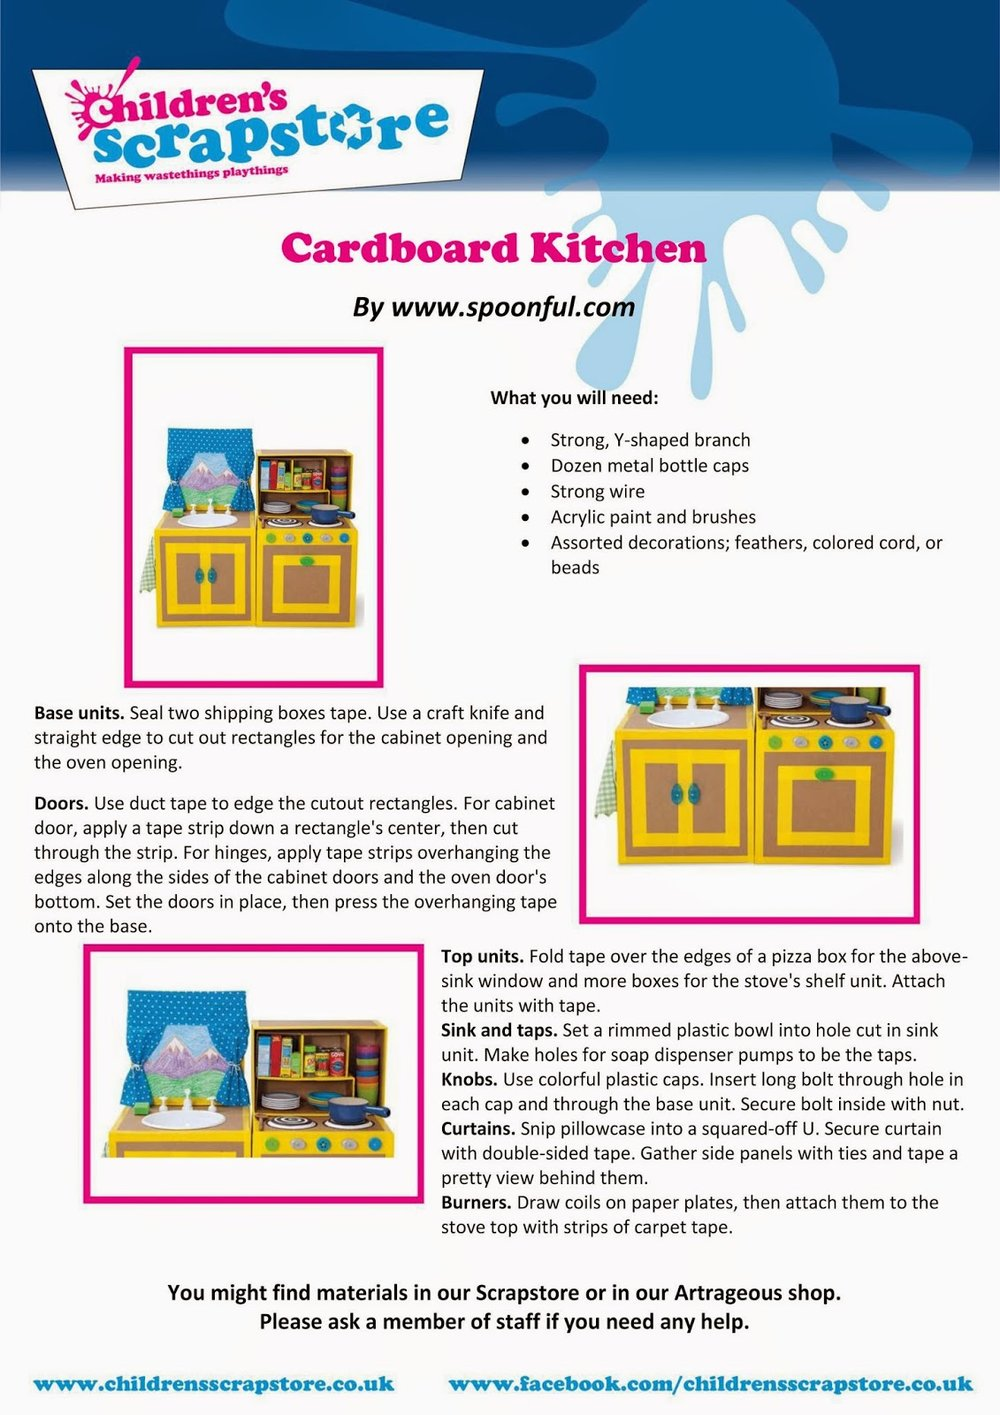 Cardboard Kitchen.jpg